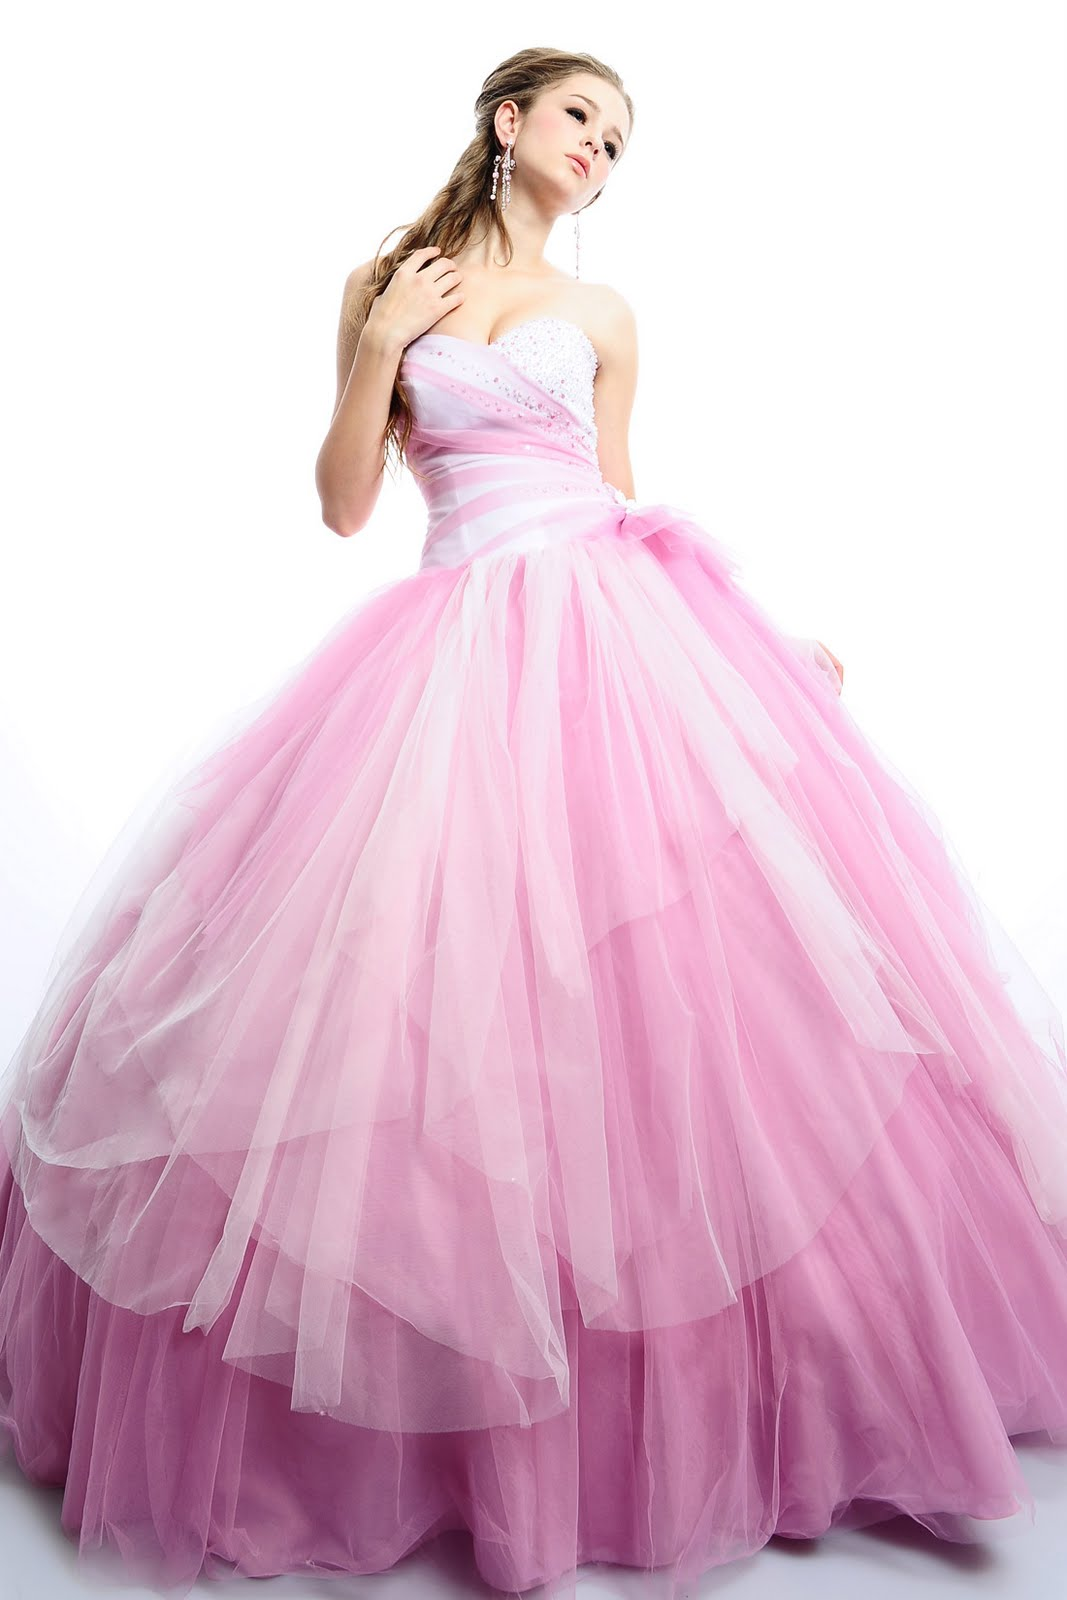 Dresses in houston menina bonita quinceanera dresses in houston